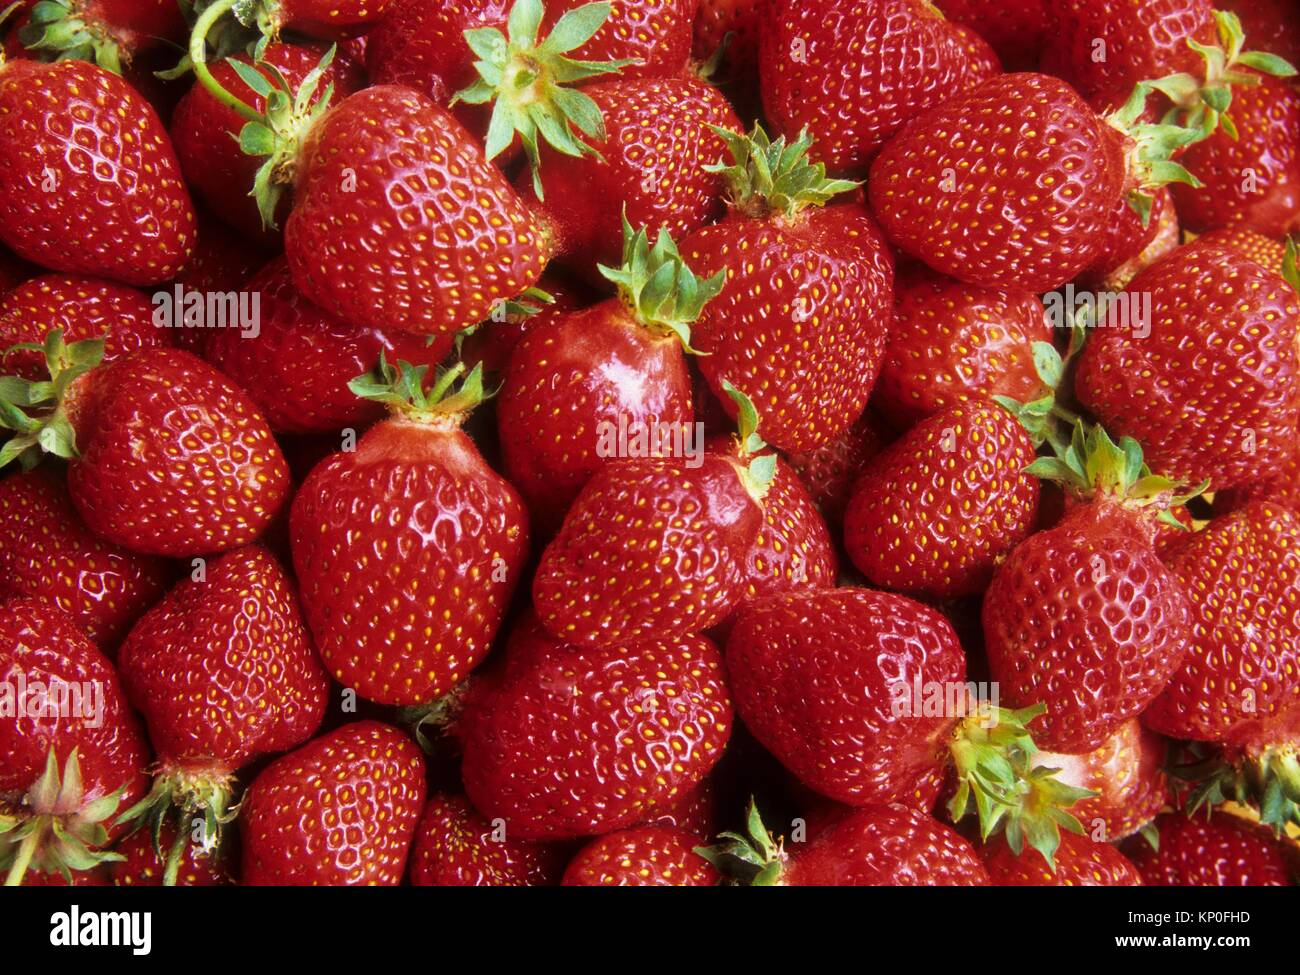 Thank You Berry Much Farms